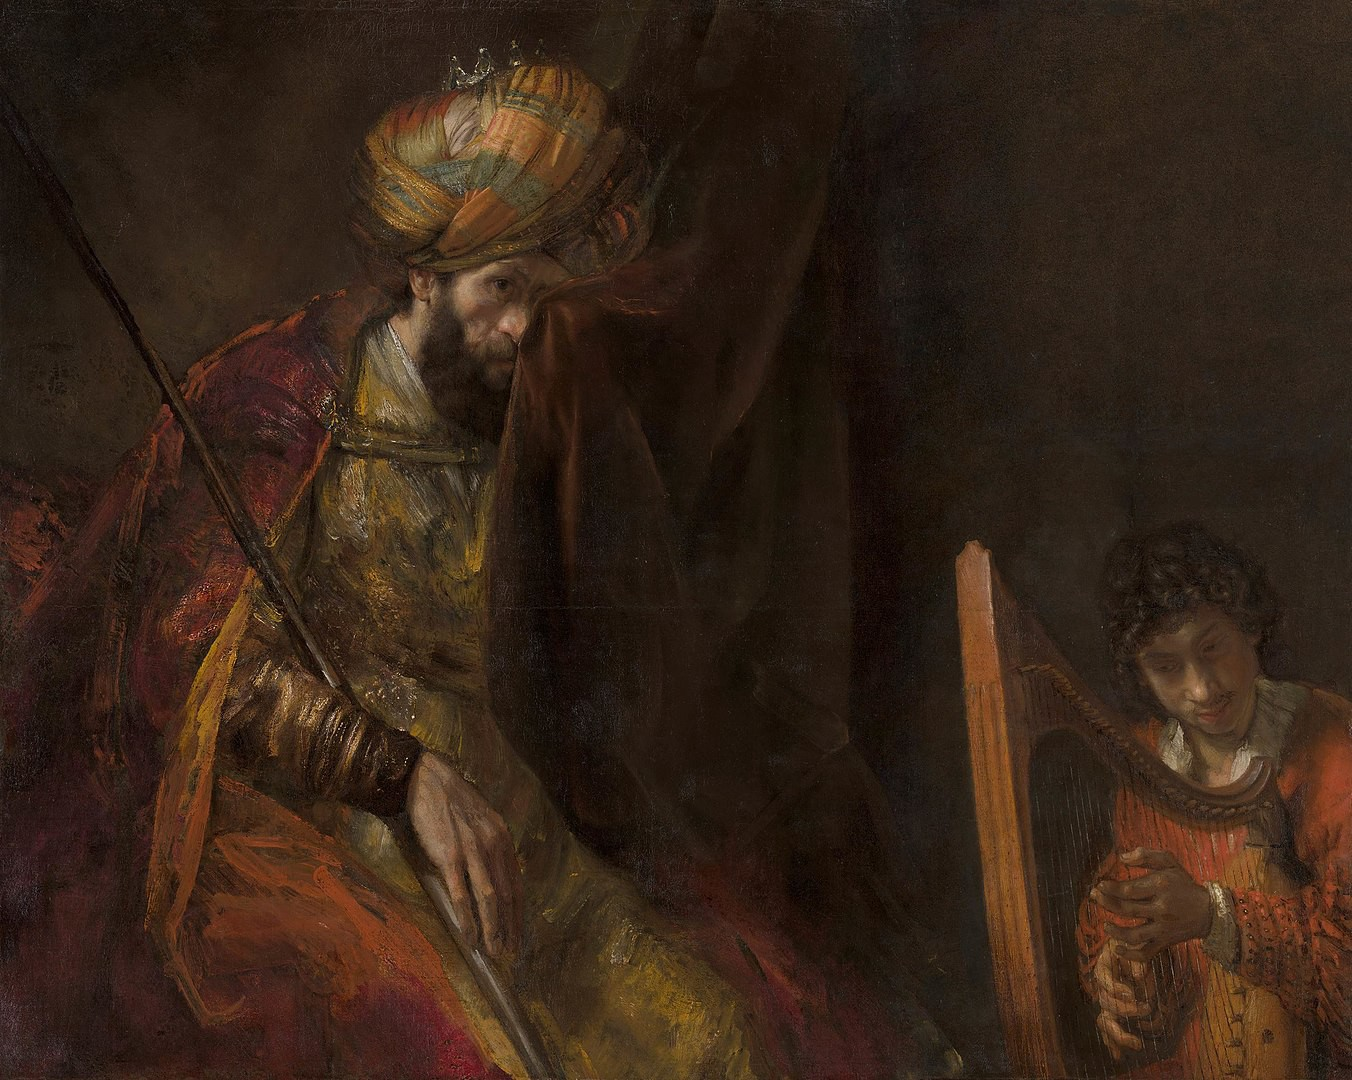 Rembrandt's painting of King Saul with David playing the harp